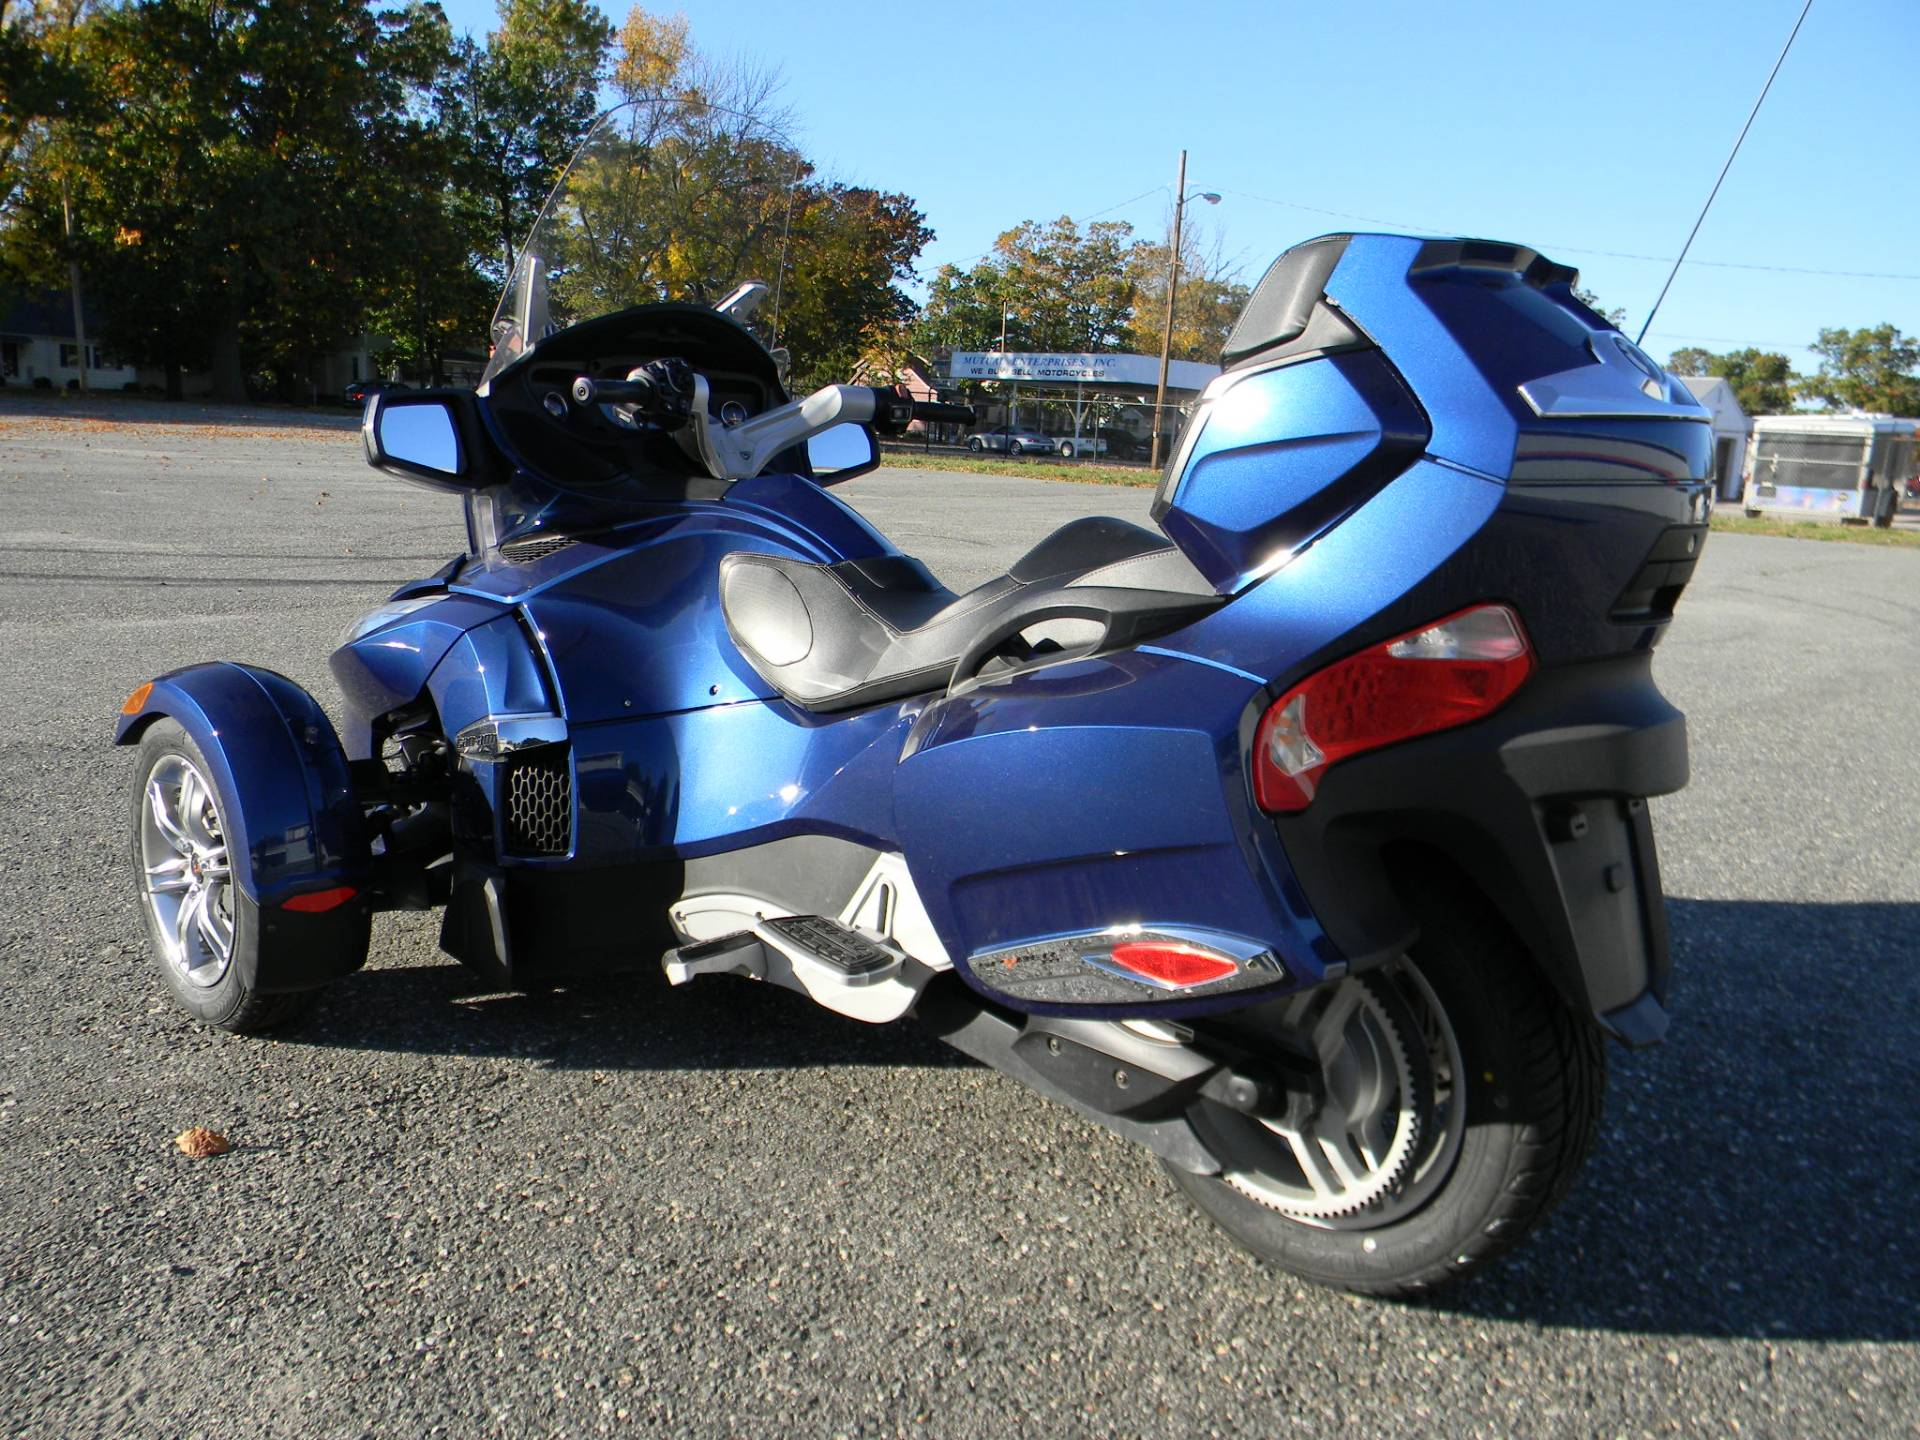 2011 can am spyder rt s se5 for sale springfield ma 585008. Black Bedroom Furniture Sets. Home Design Ideas